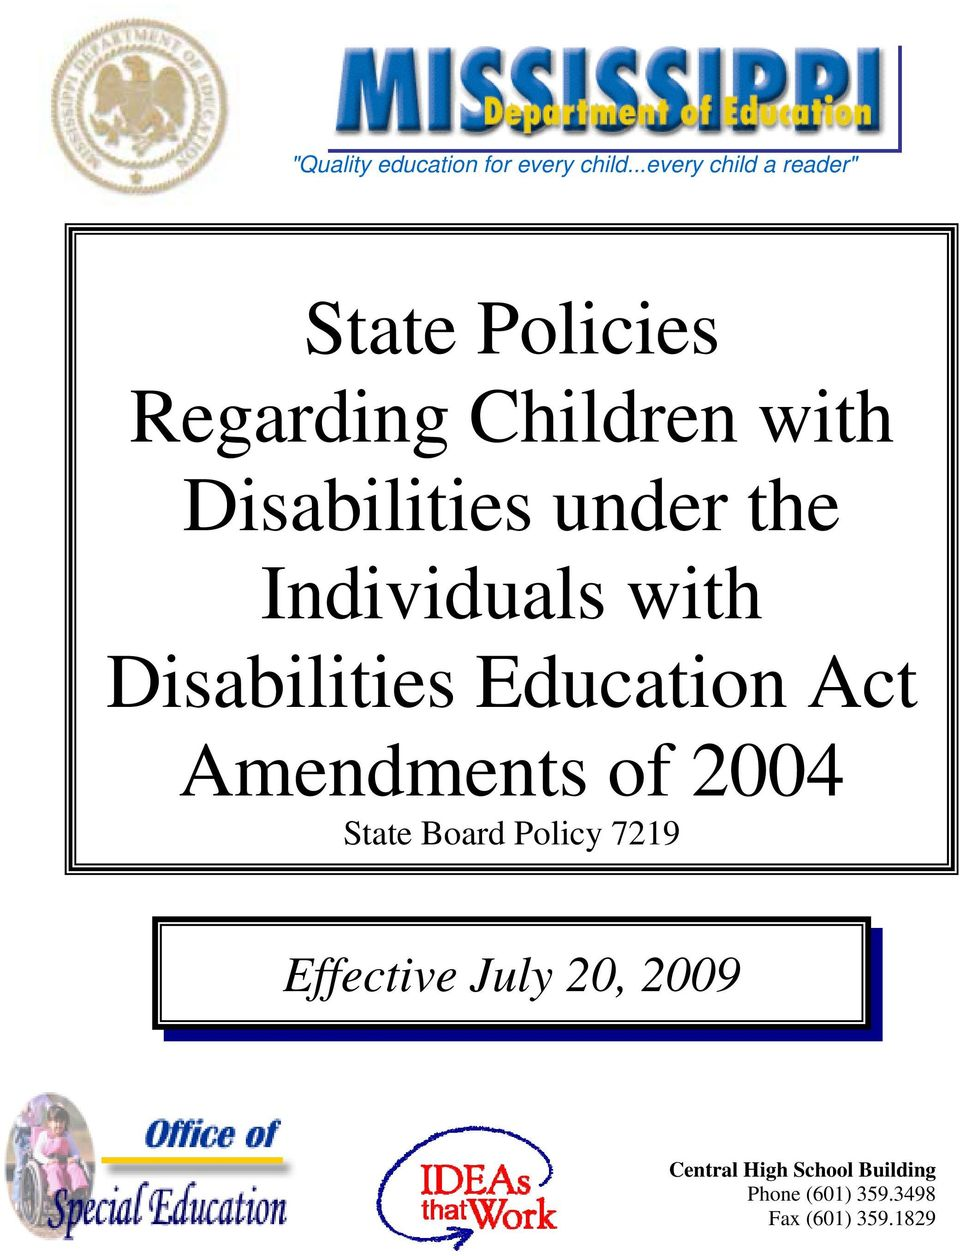 Disabilities under the Individuals with Disabilities Education Act